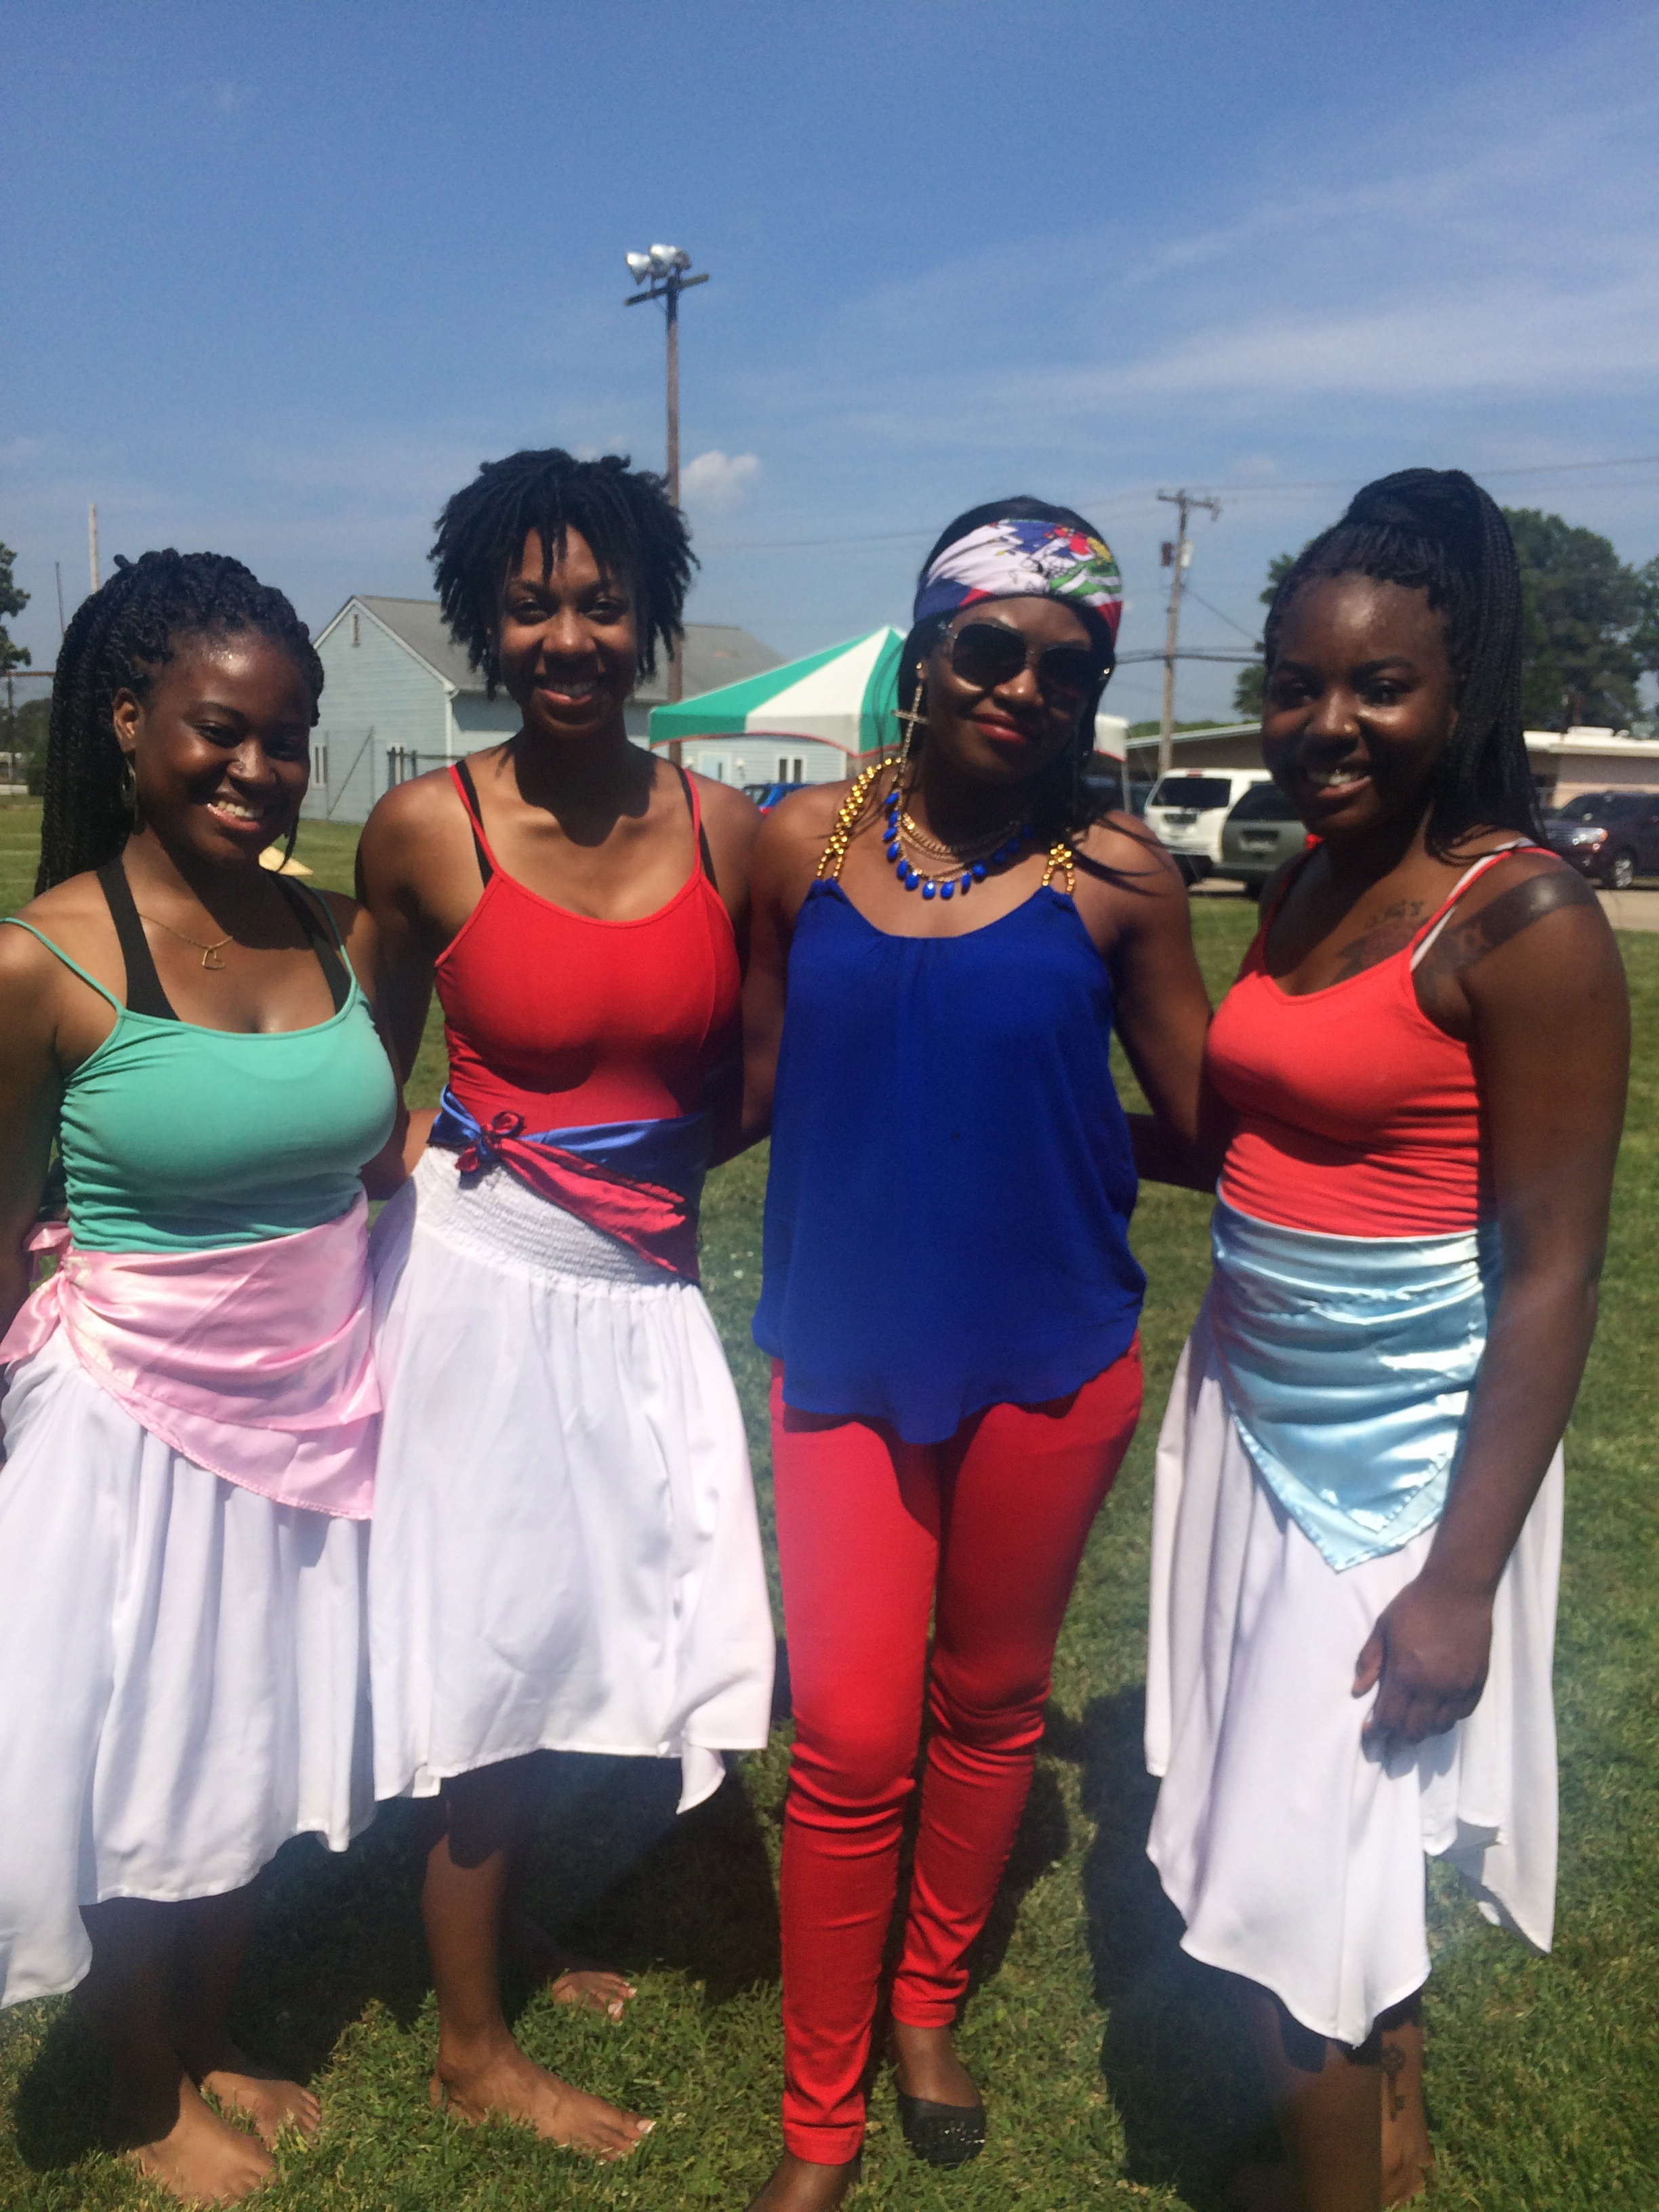 Kayla, Camille, and Shu'Keia with Wisline, a new friend interested in dancing together